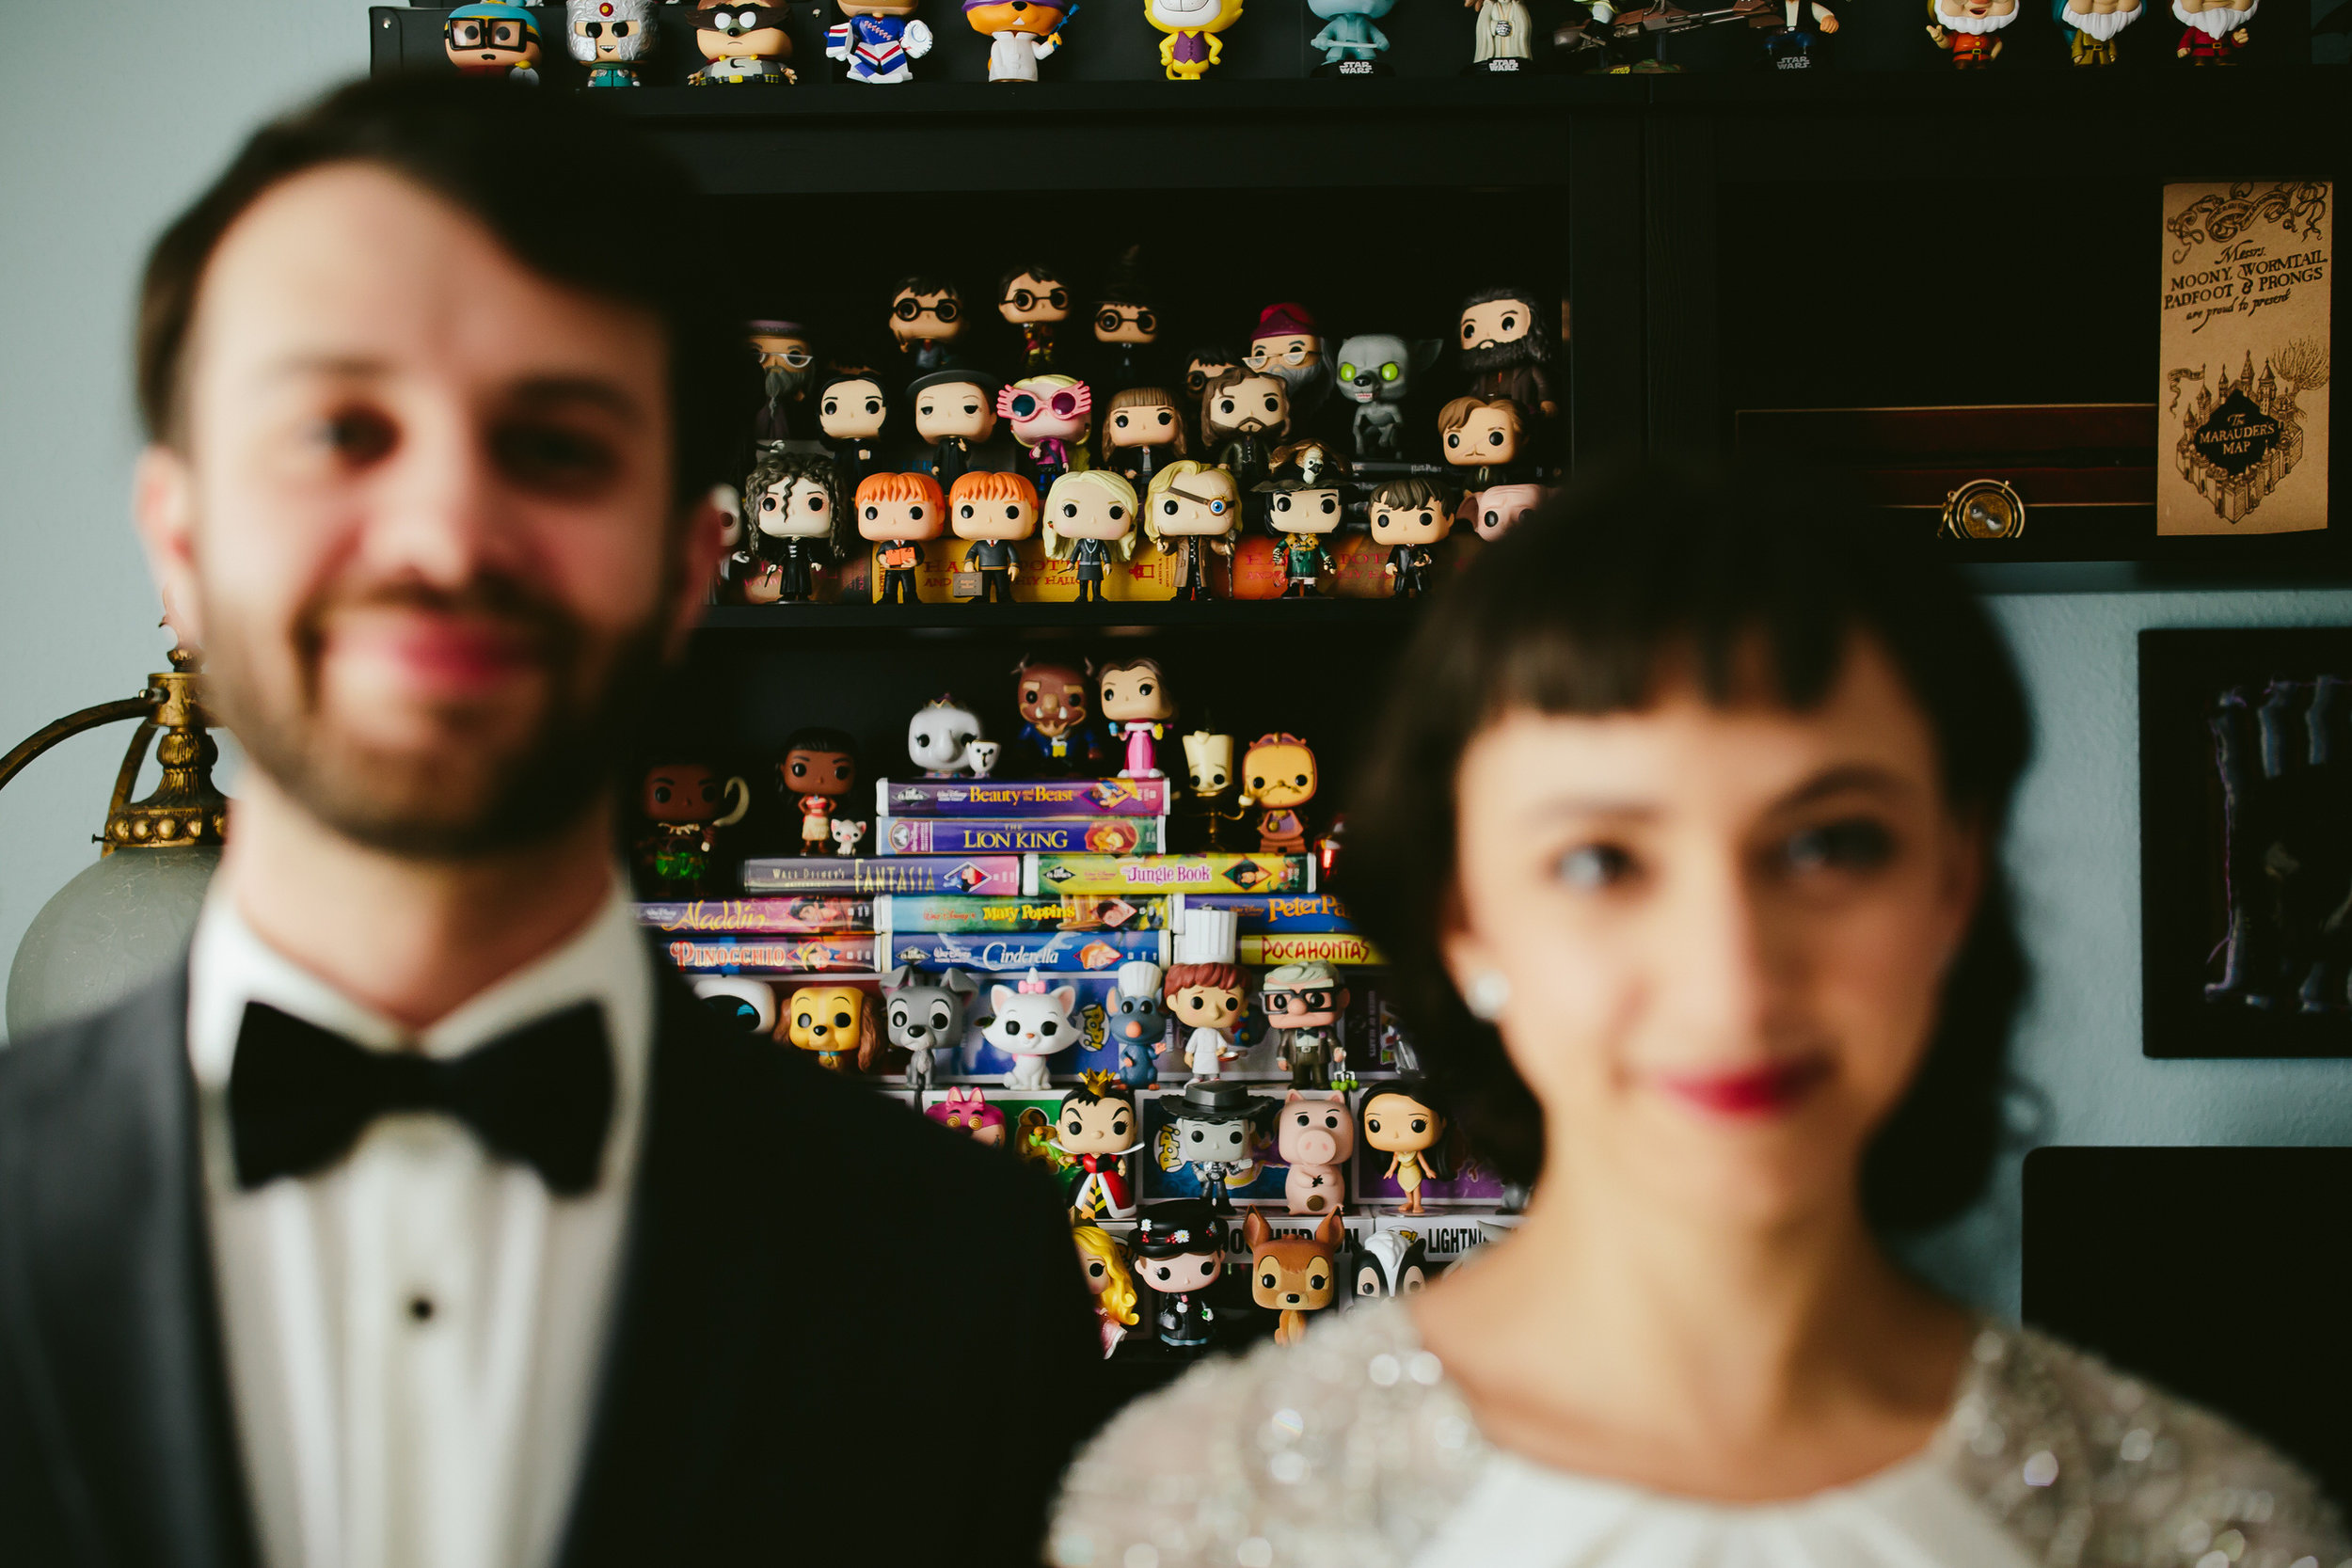 bride_and_groom_cats_in_home_session_wedding_fort_lauderdale_photographer_steph_lynn_photo-158.jpg